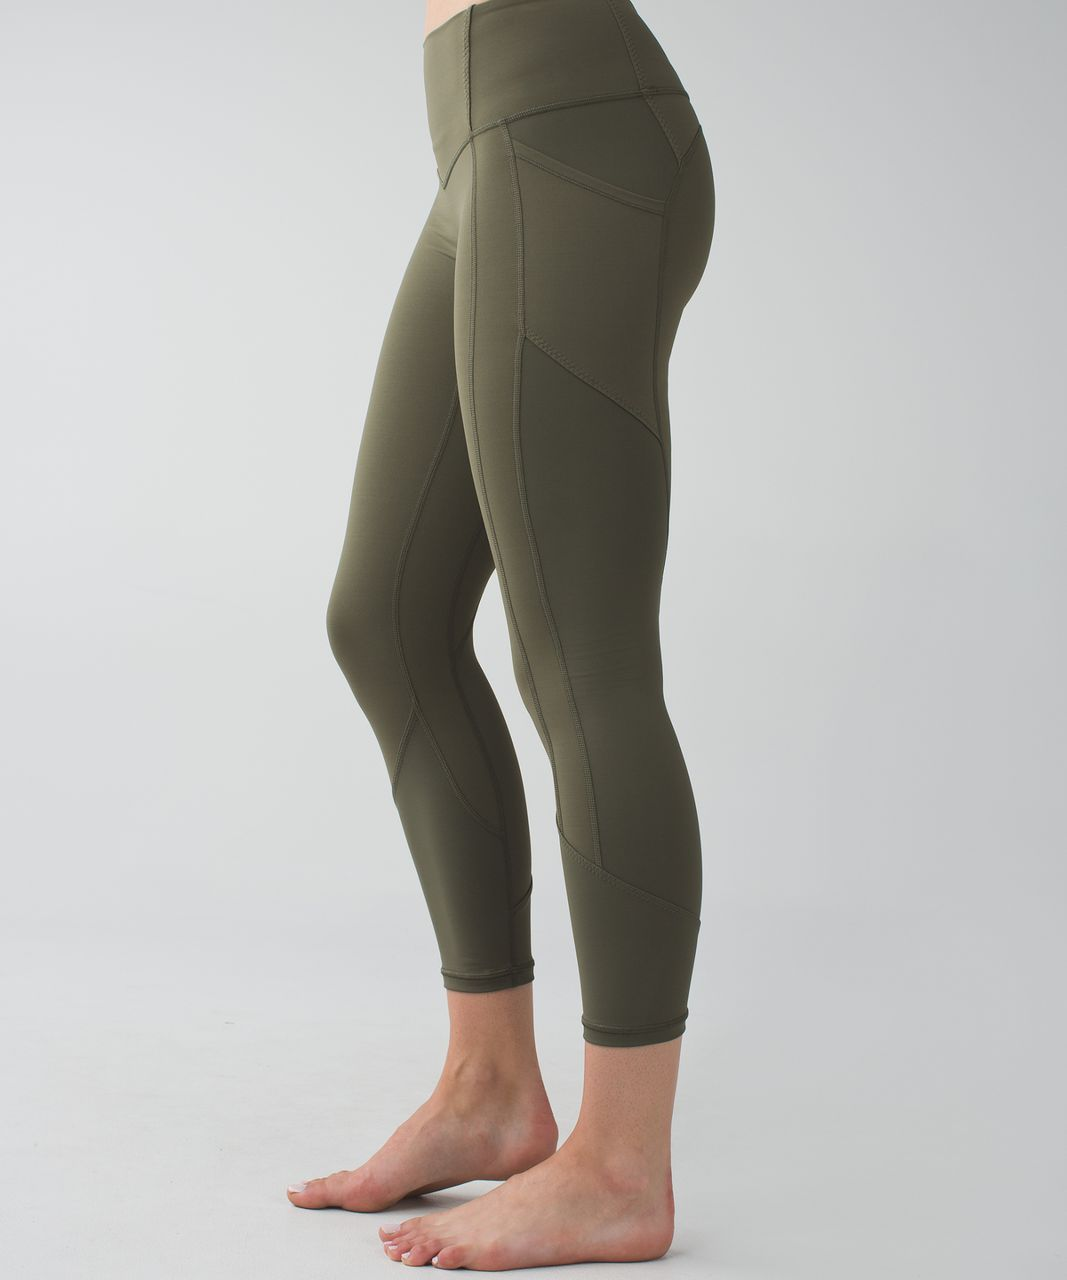 Lululemon All The Right Places Crop - Fatigue Green - lulu